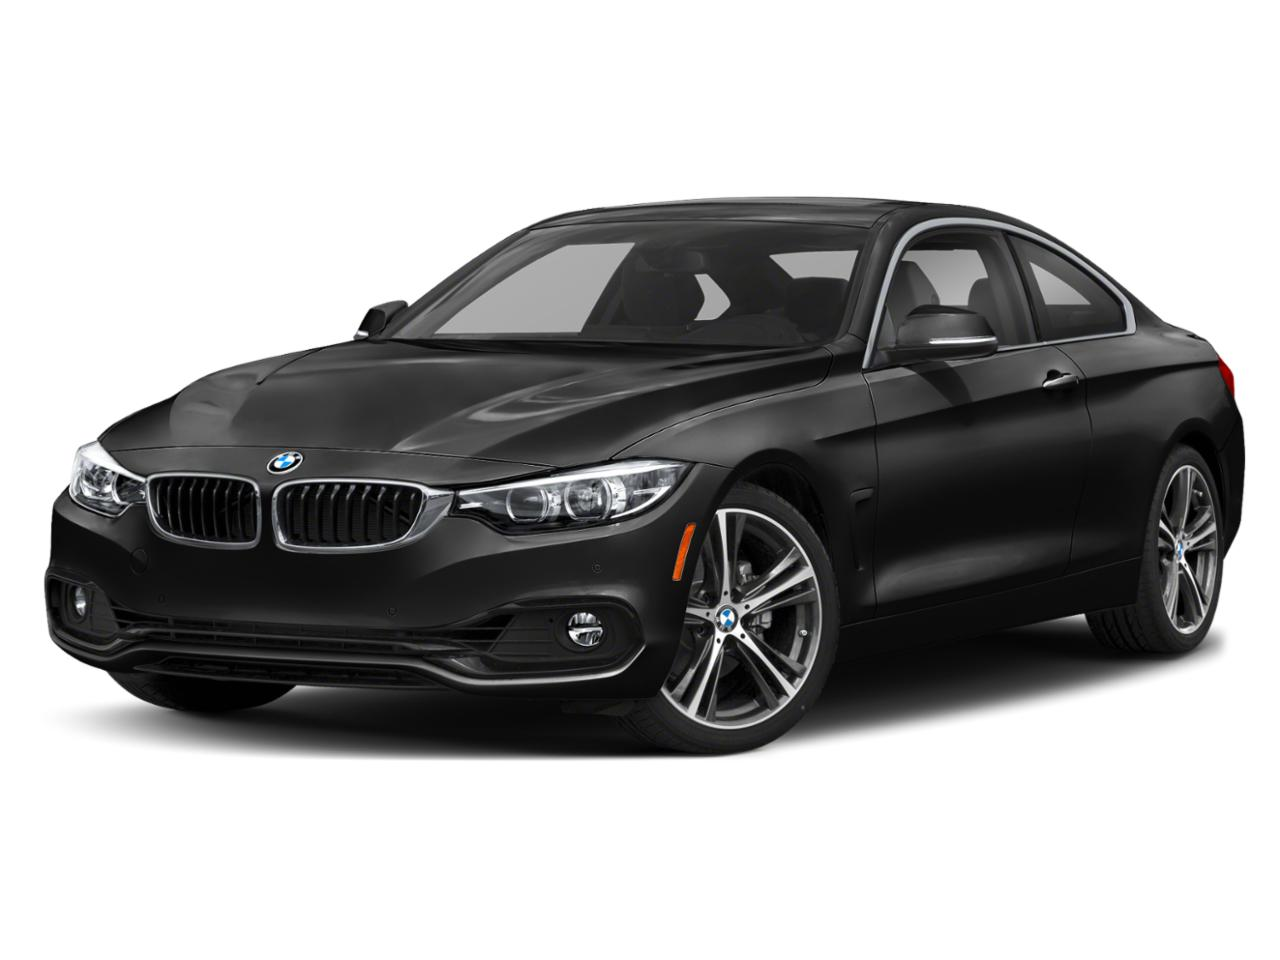 2018 BMW 430i Vehicle Photo in Pleasanton, CA 94588